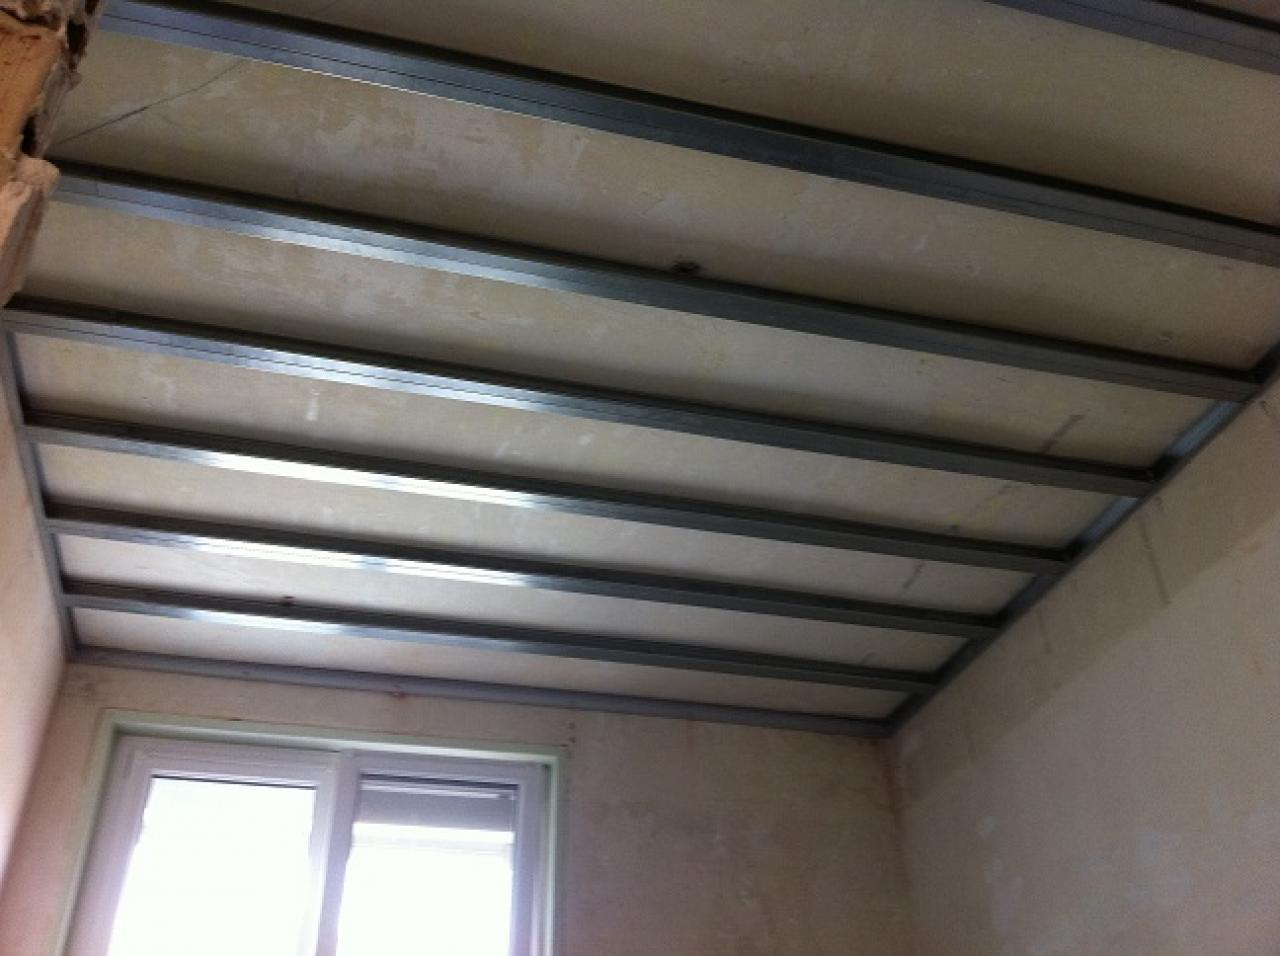 Types de rails et montants pour plafond autoporteur placo for Faire un faux plafond en ba13